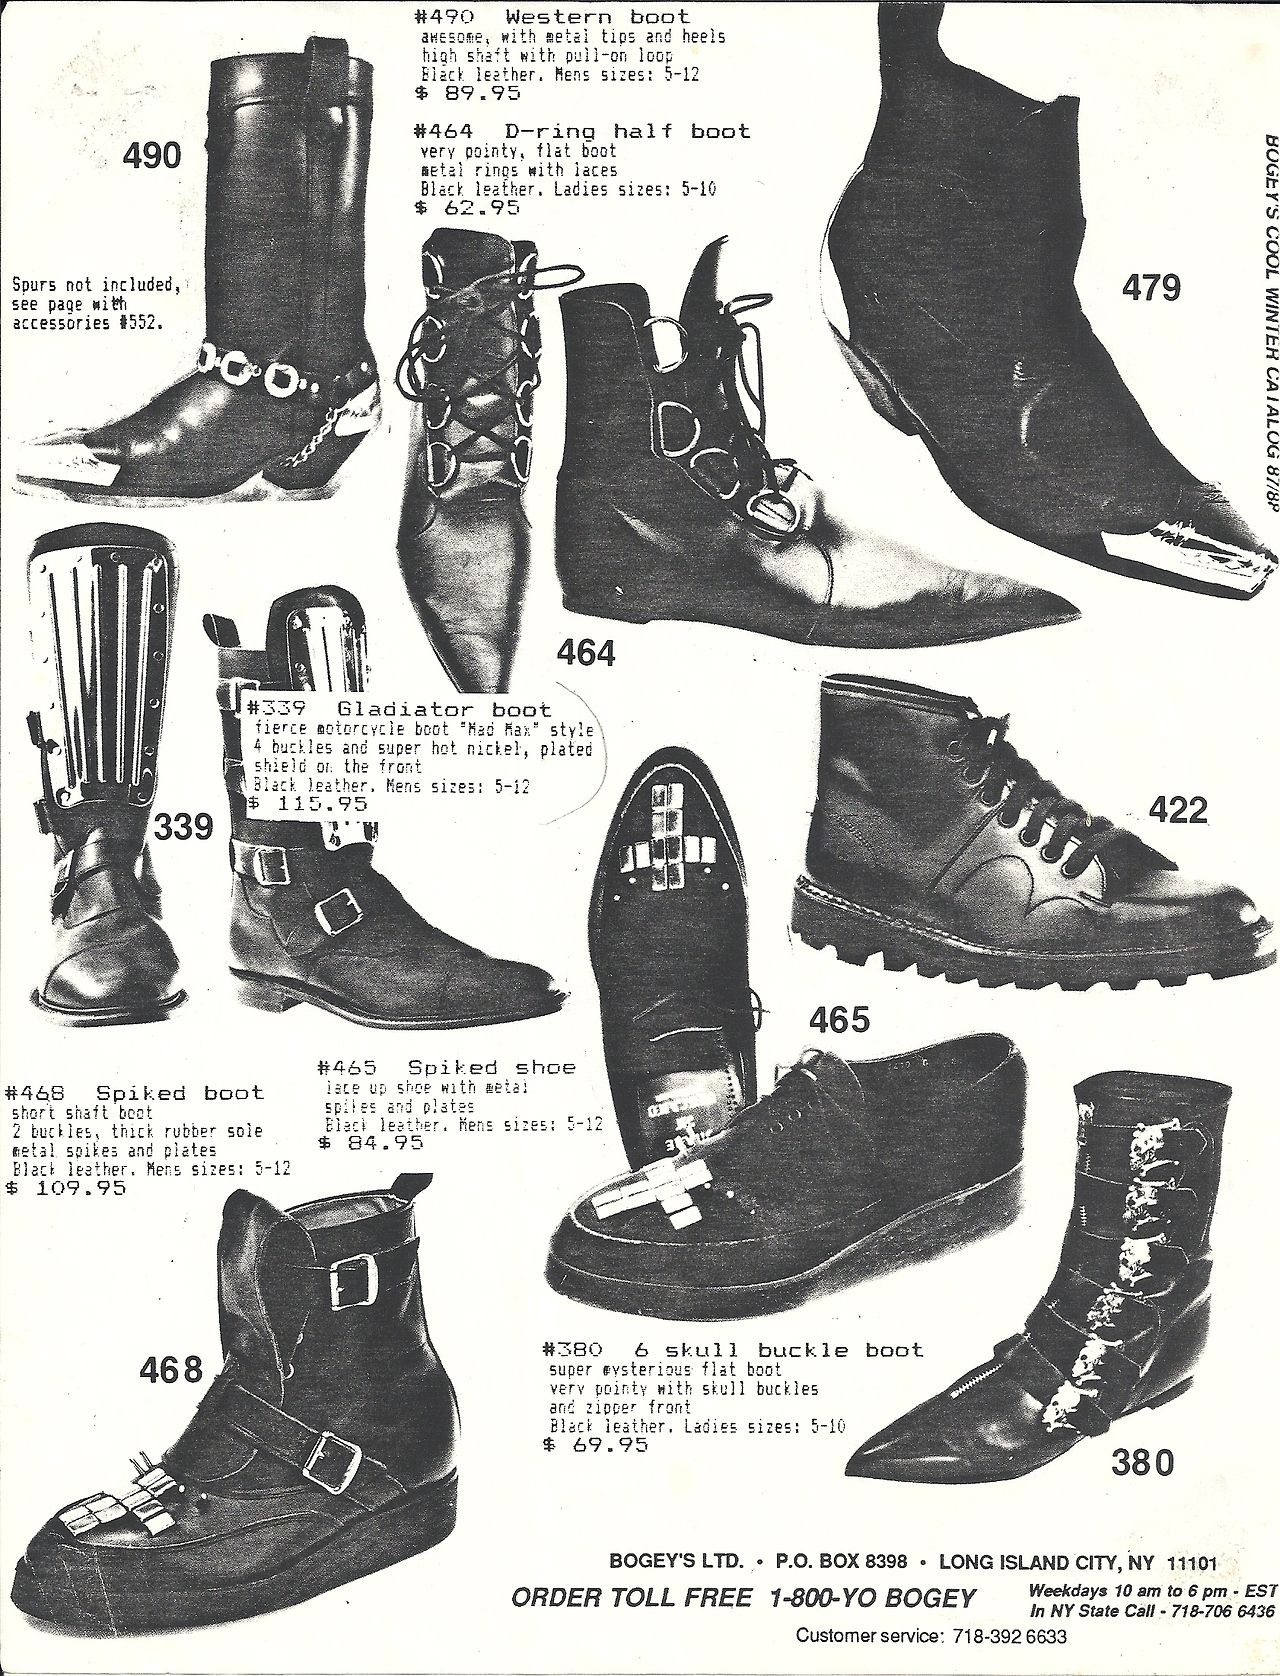 new product b5008 355ca goth doc martens 80s Fashion gothic fashion 80s goth pointy boots  3 more  from the Bogeys catalog from the 80 s  3